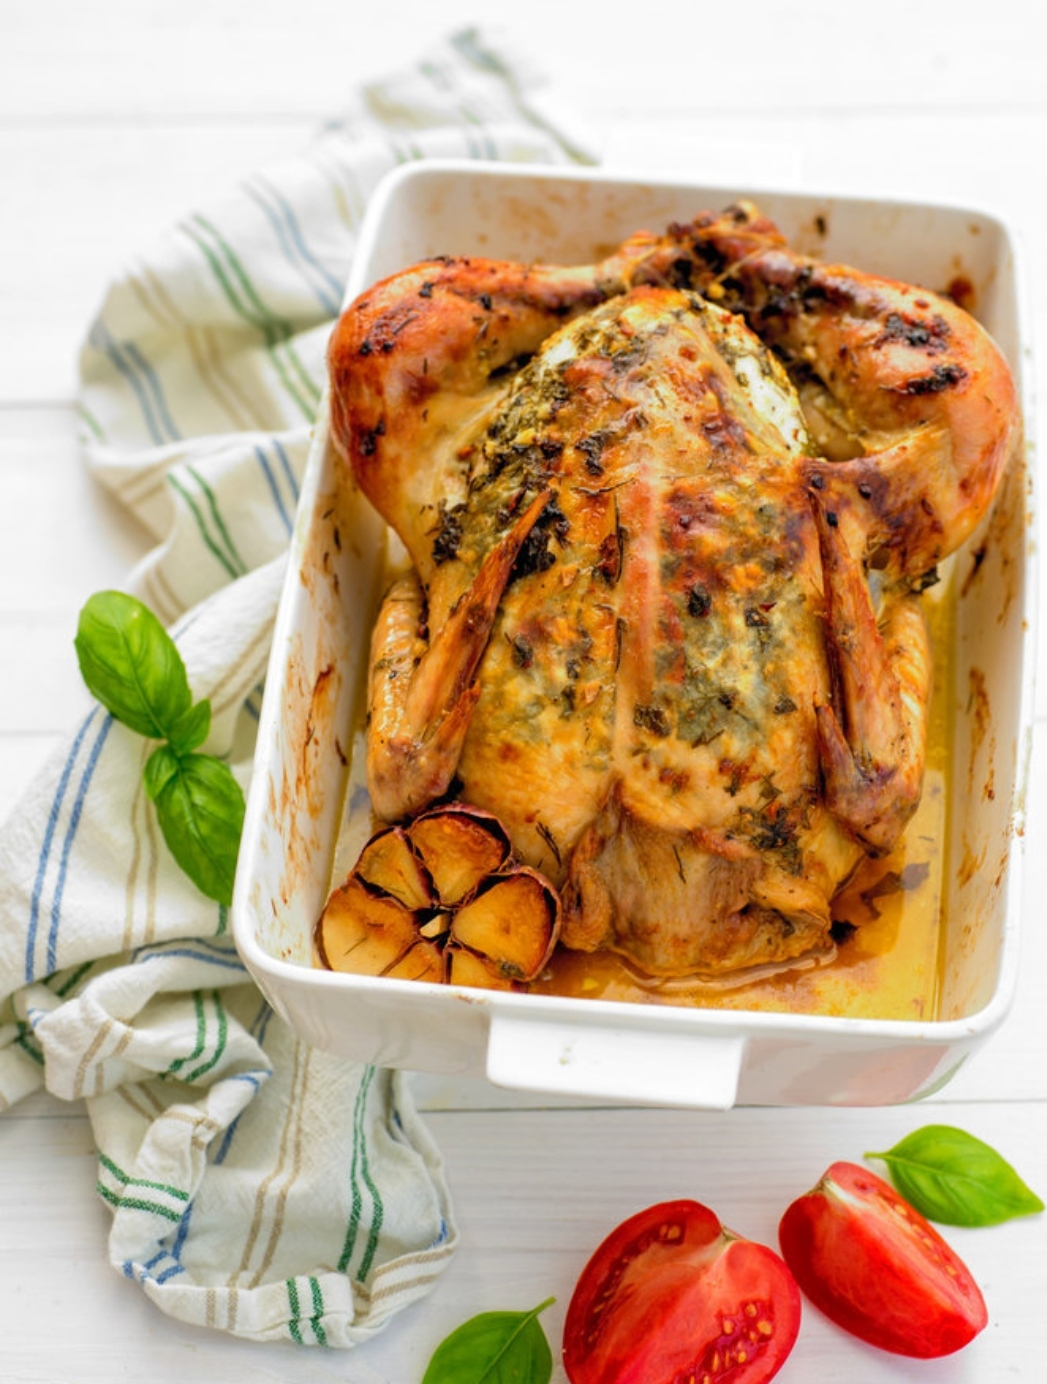 Chicken baked with aromatic butter and garlic